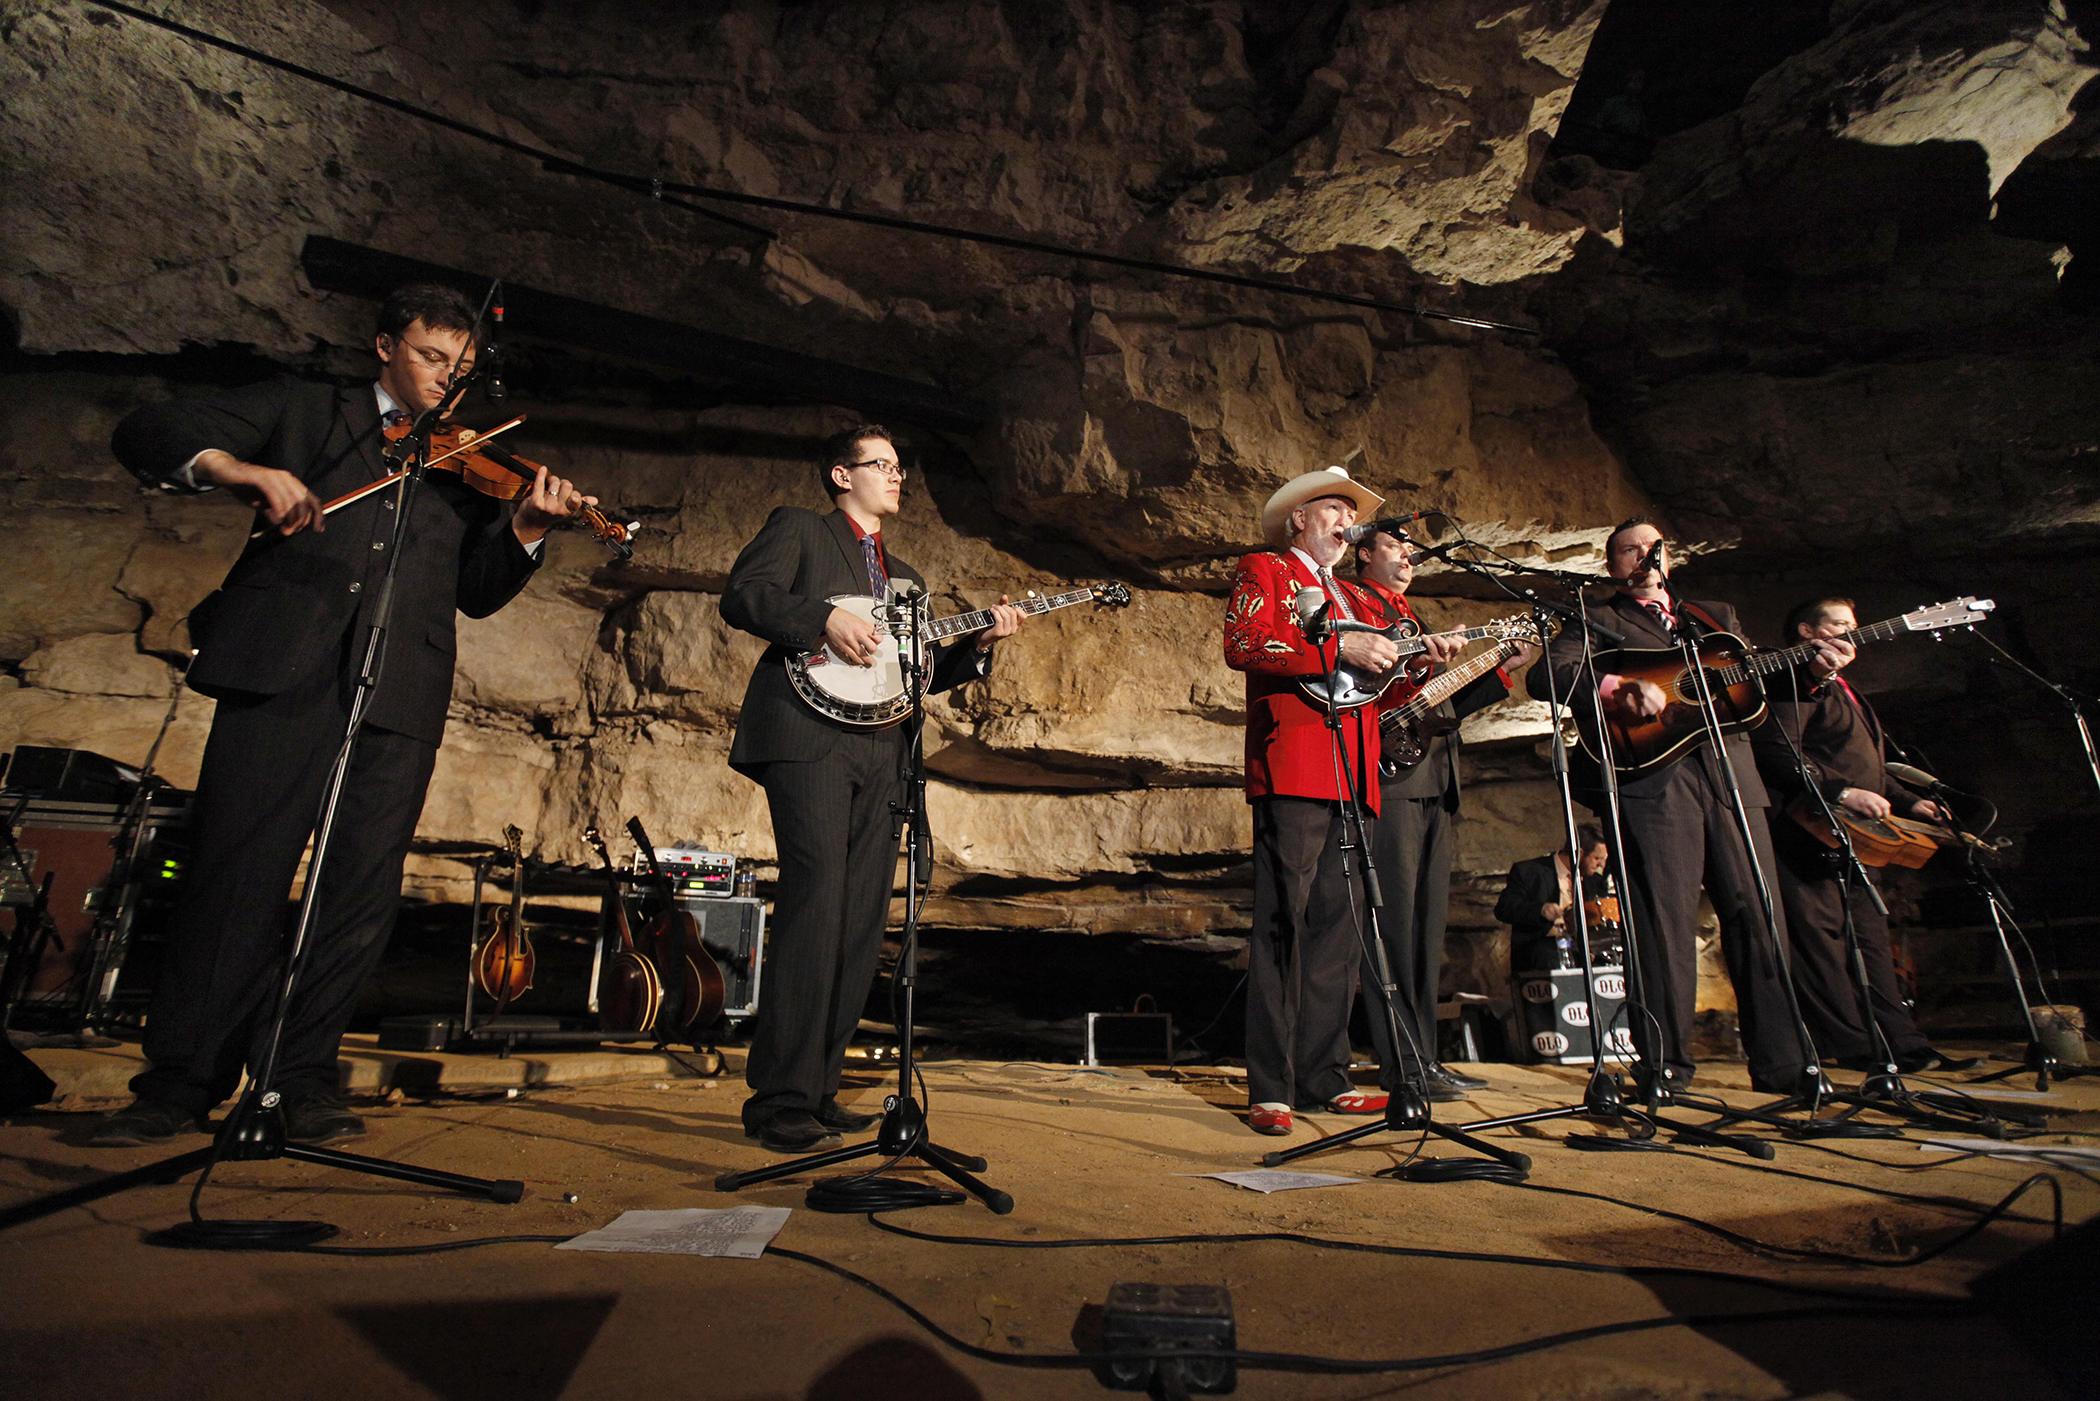 In this July 26, 2011 photo, Doyle Lawson, center, and Quicksilver perform in the Volcano Room at Cumberland Caverns, 333 feet below ground, in McMinnville, Tenn. The natural ampitheater is where the Bluegrass Underground radio show is broadcast from once a month.